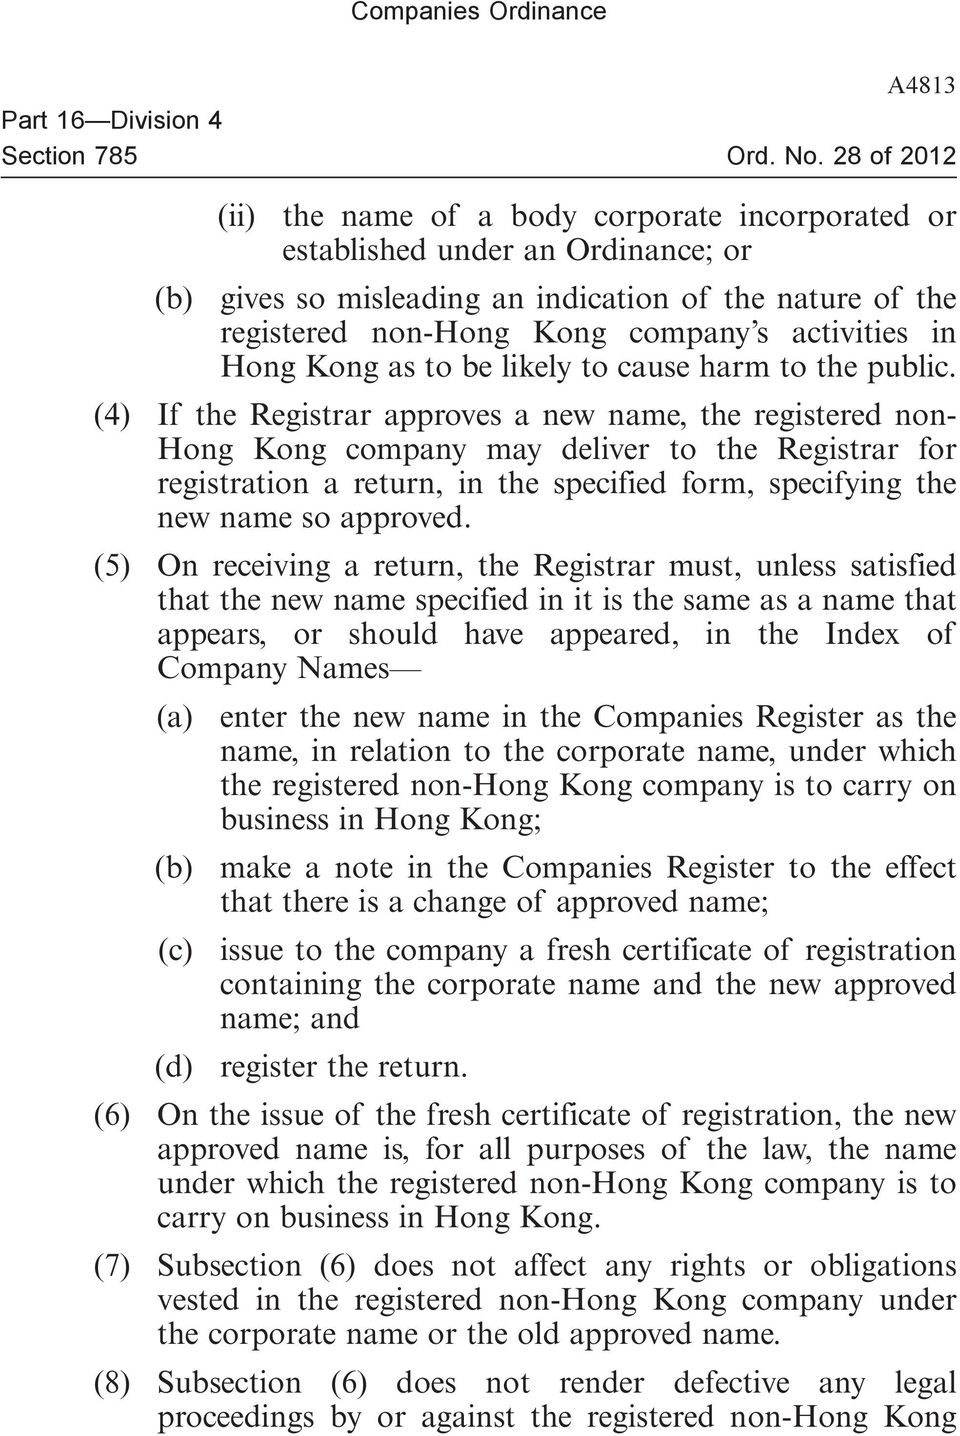 (4) If the Registrar approves a new name, the registered non- Hong Kong company may deliver to the Registrar for registration a return, in the specified form, specifying the new name so approved.